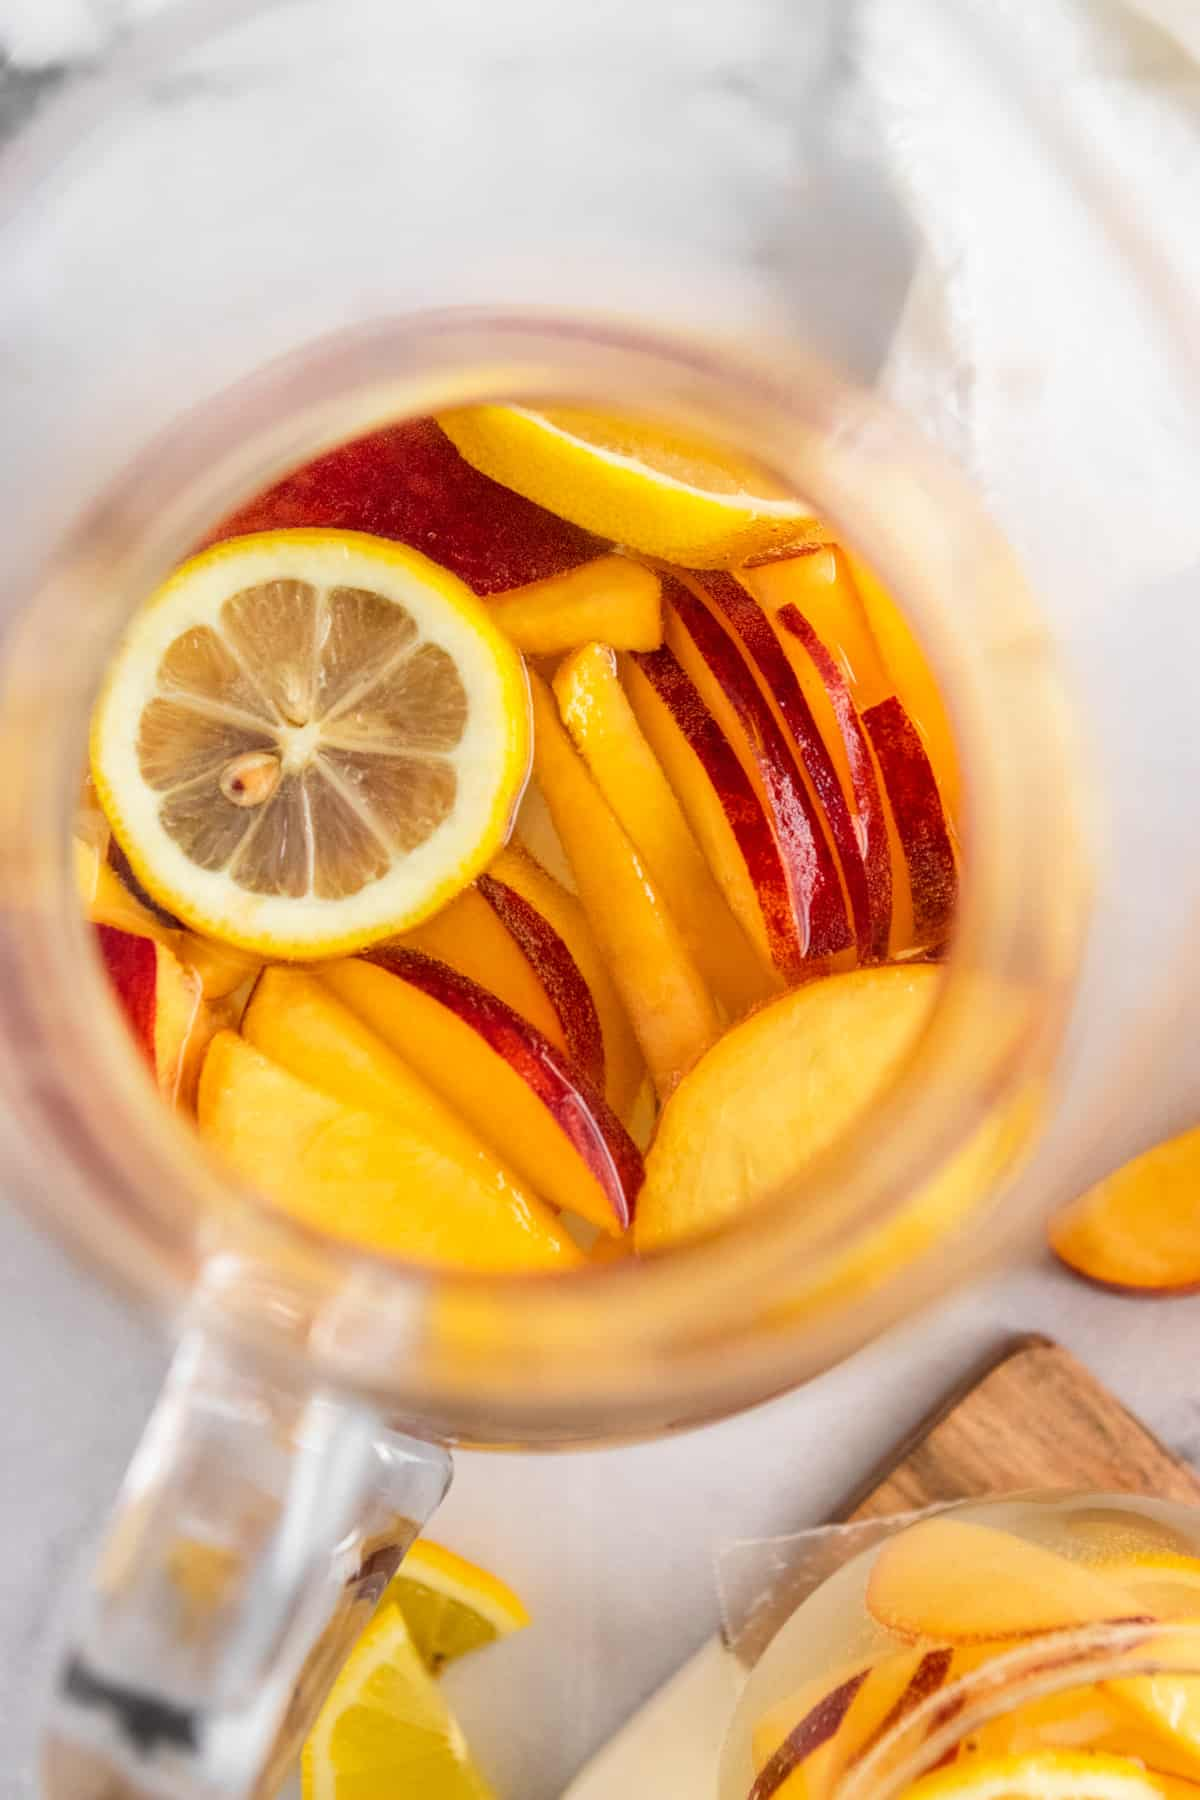 Overhead view of pitcher of peach white sangria.